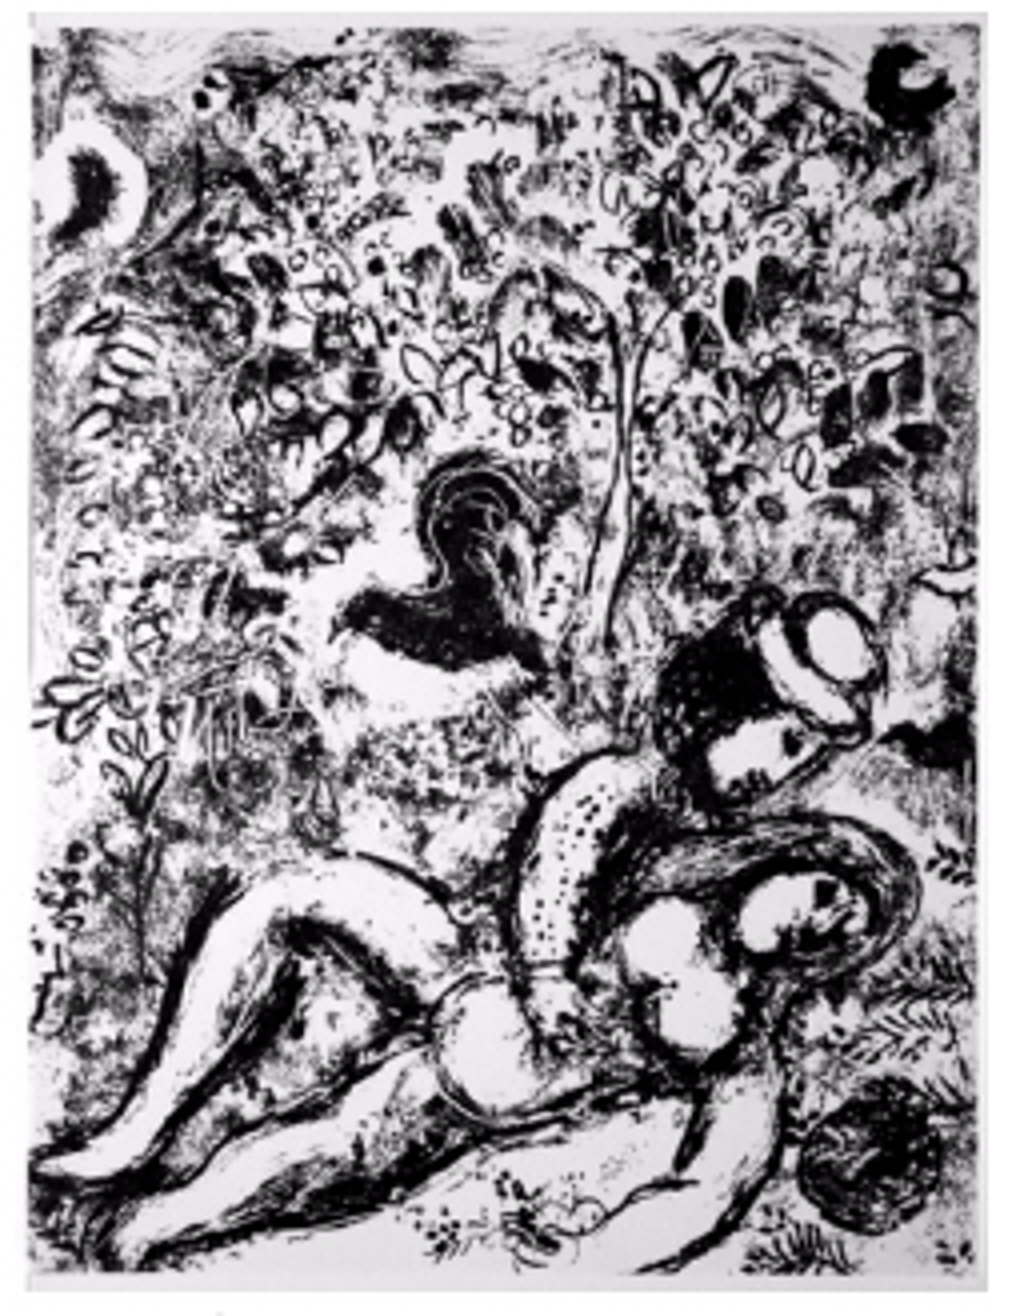 Couple Beside Tree from Chagall Lithographs I by Marc Chagall (1887 - 1985)